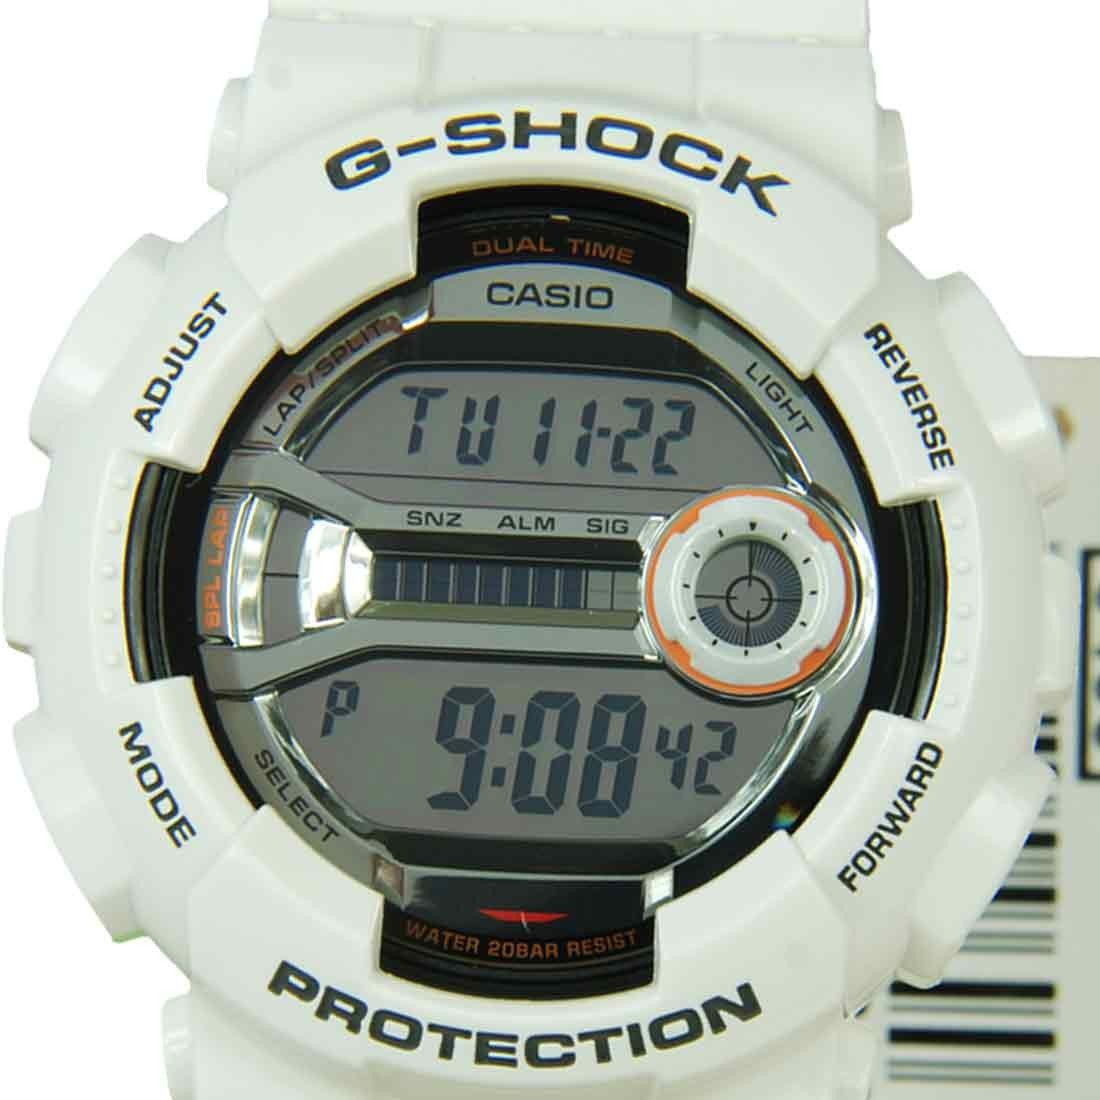 Casio Watch Gd 110 7dr And G Shock Camouflage 120cm 4dr